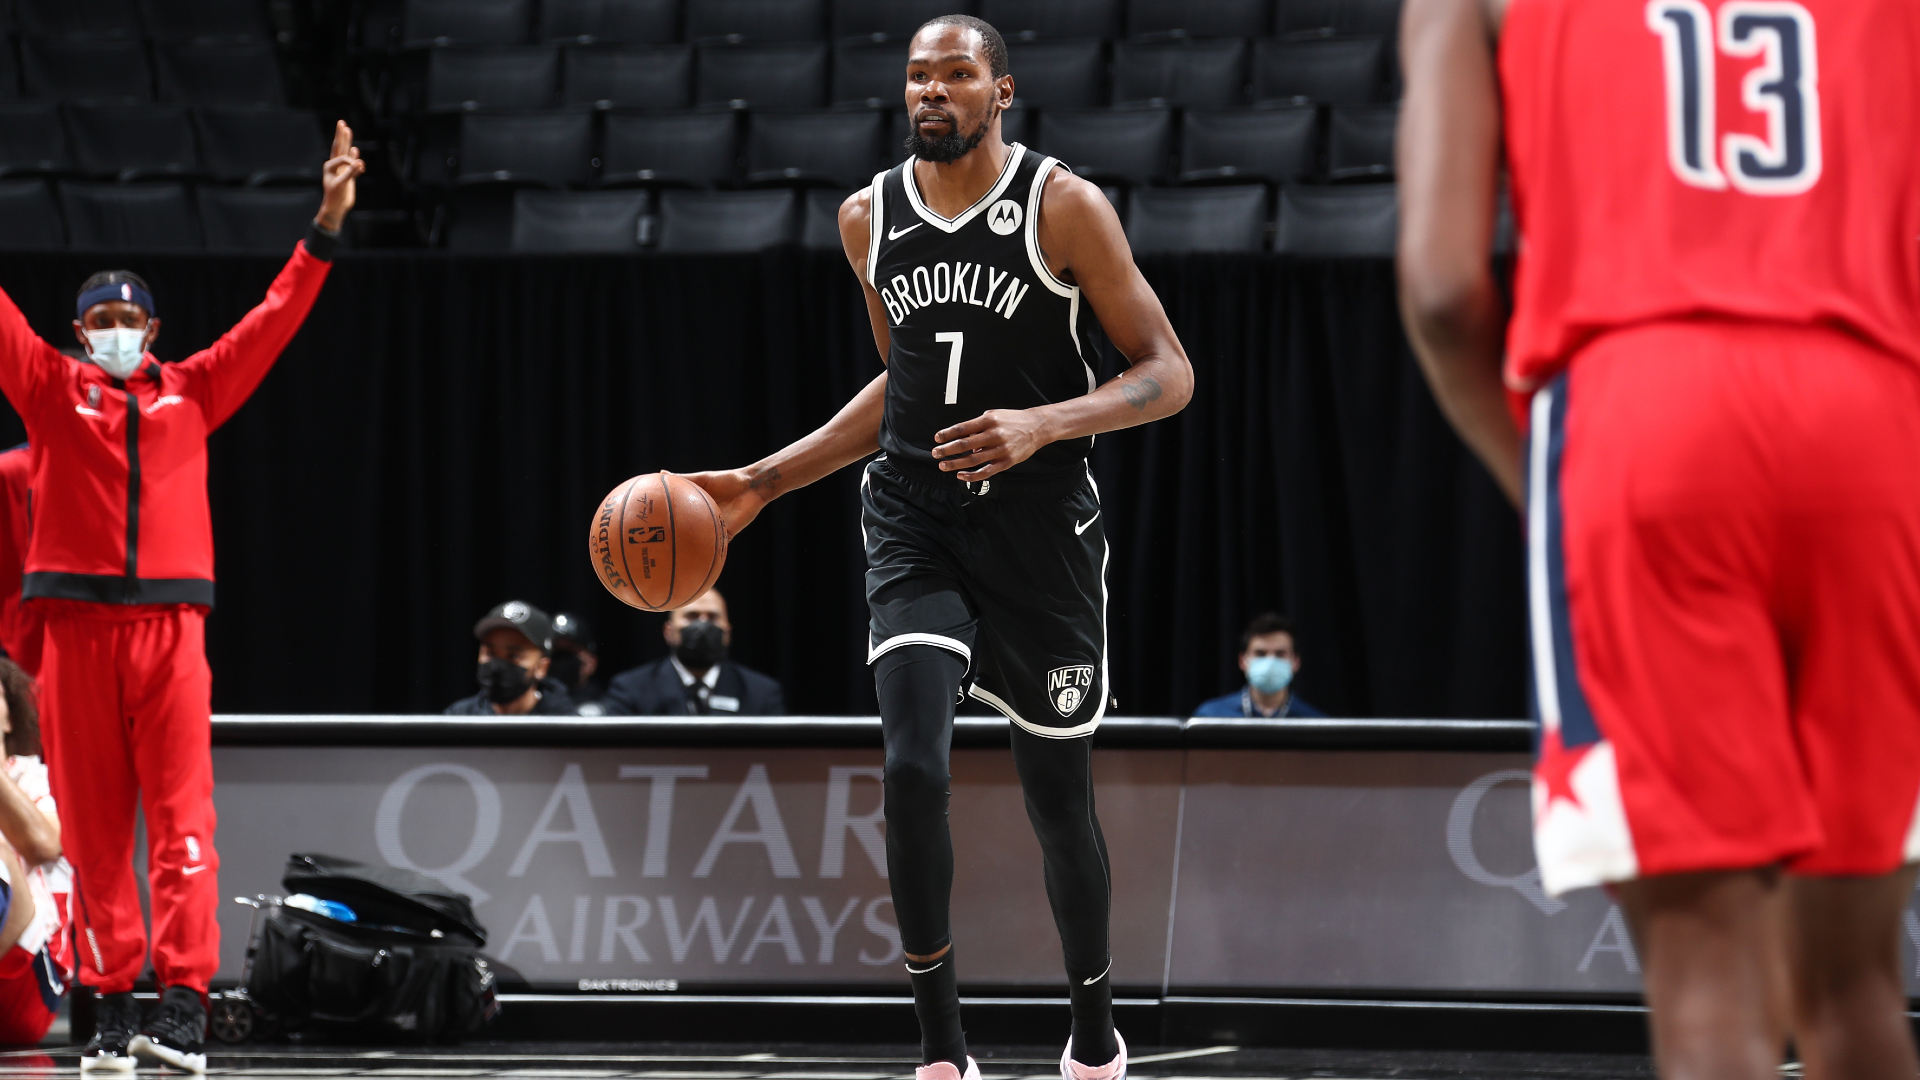 Durant could return for Nets on Sunday, Irving out of 76ers clash